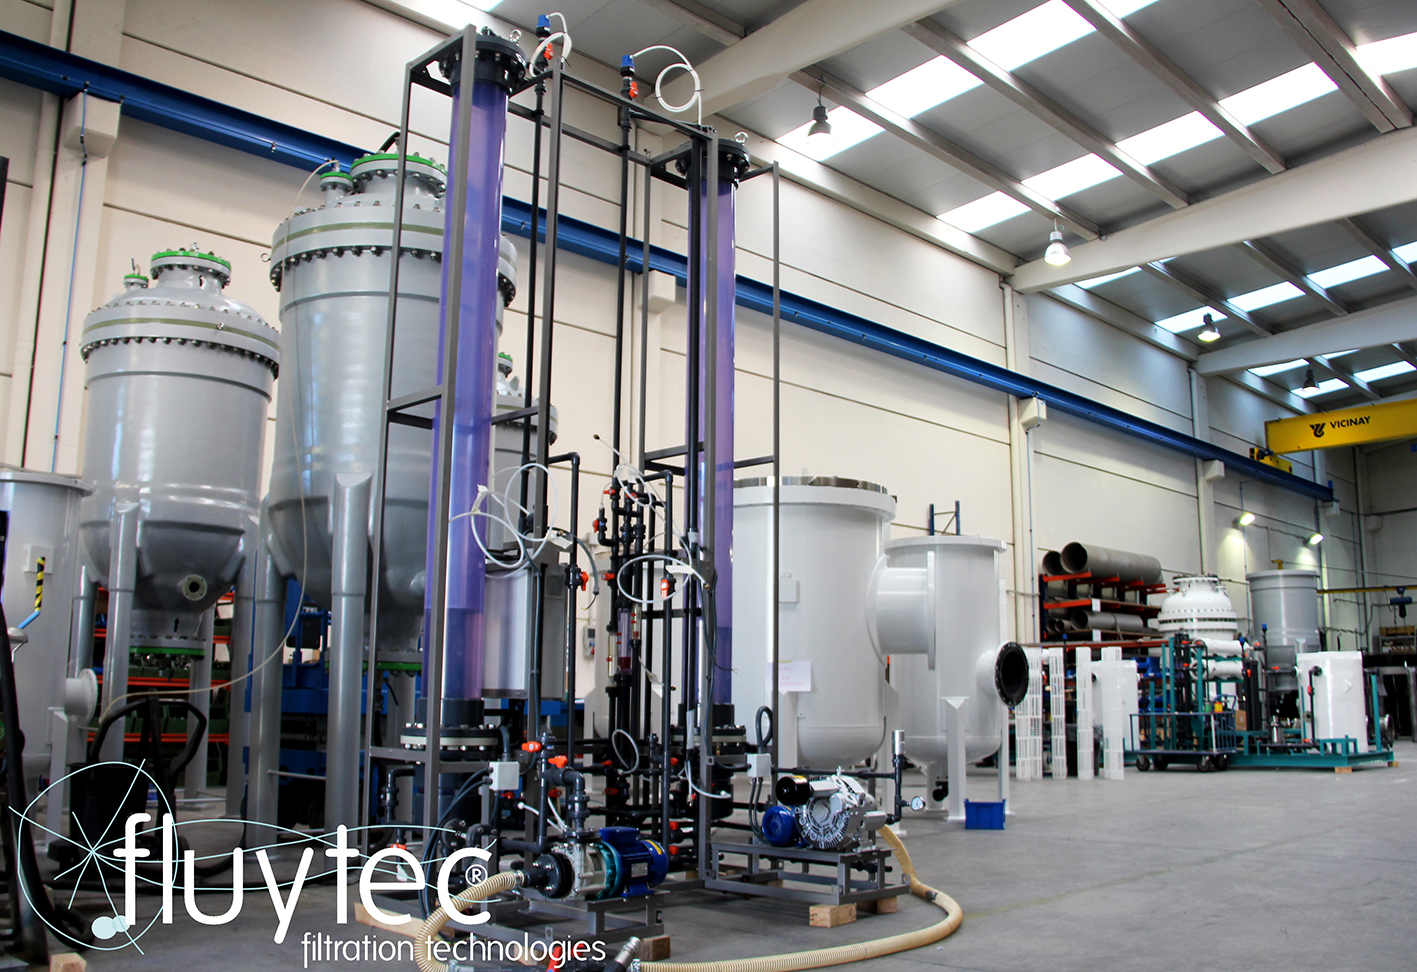 Facilities of Fluytec in Mungia